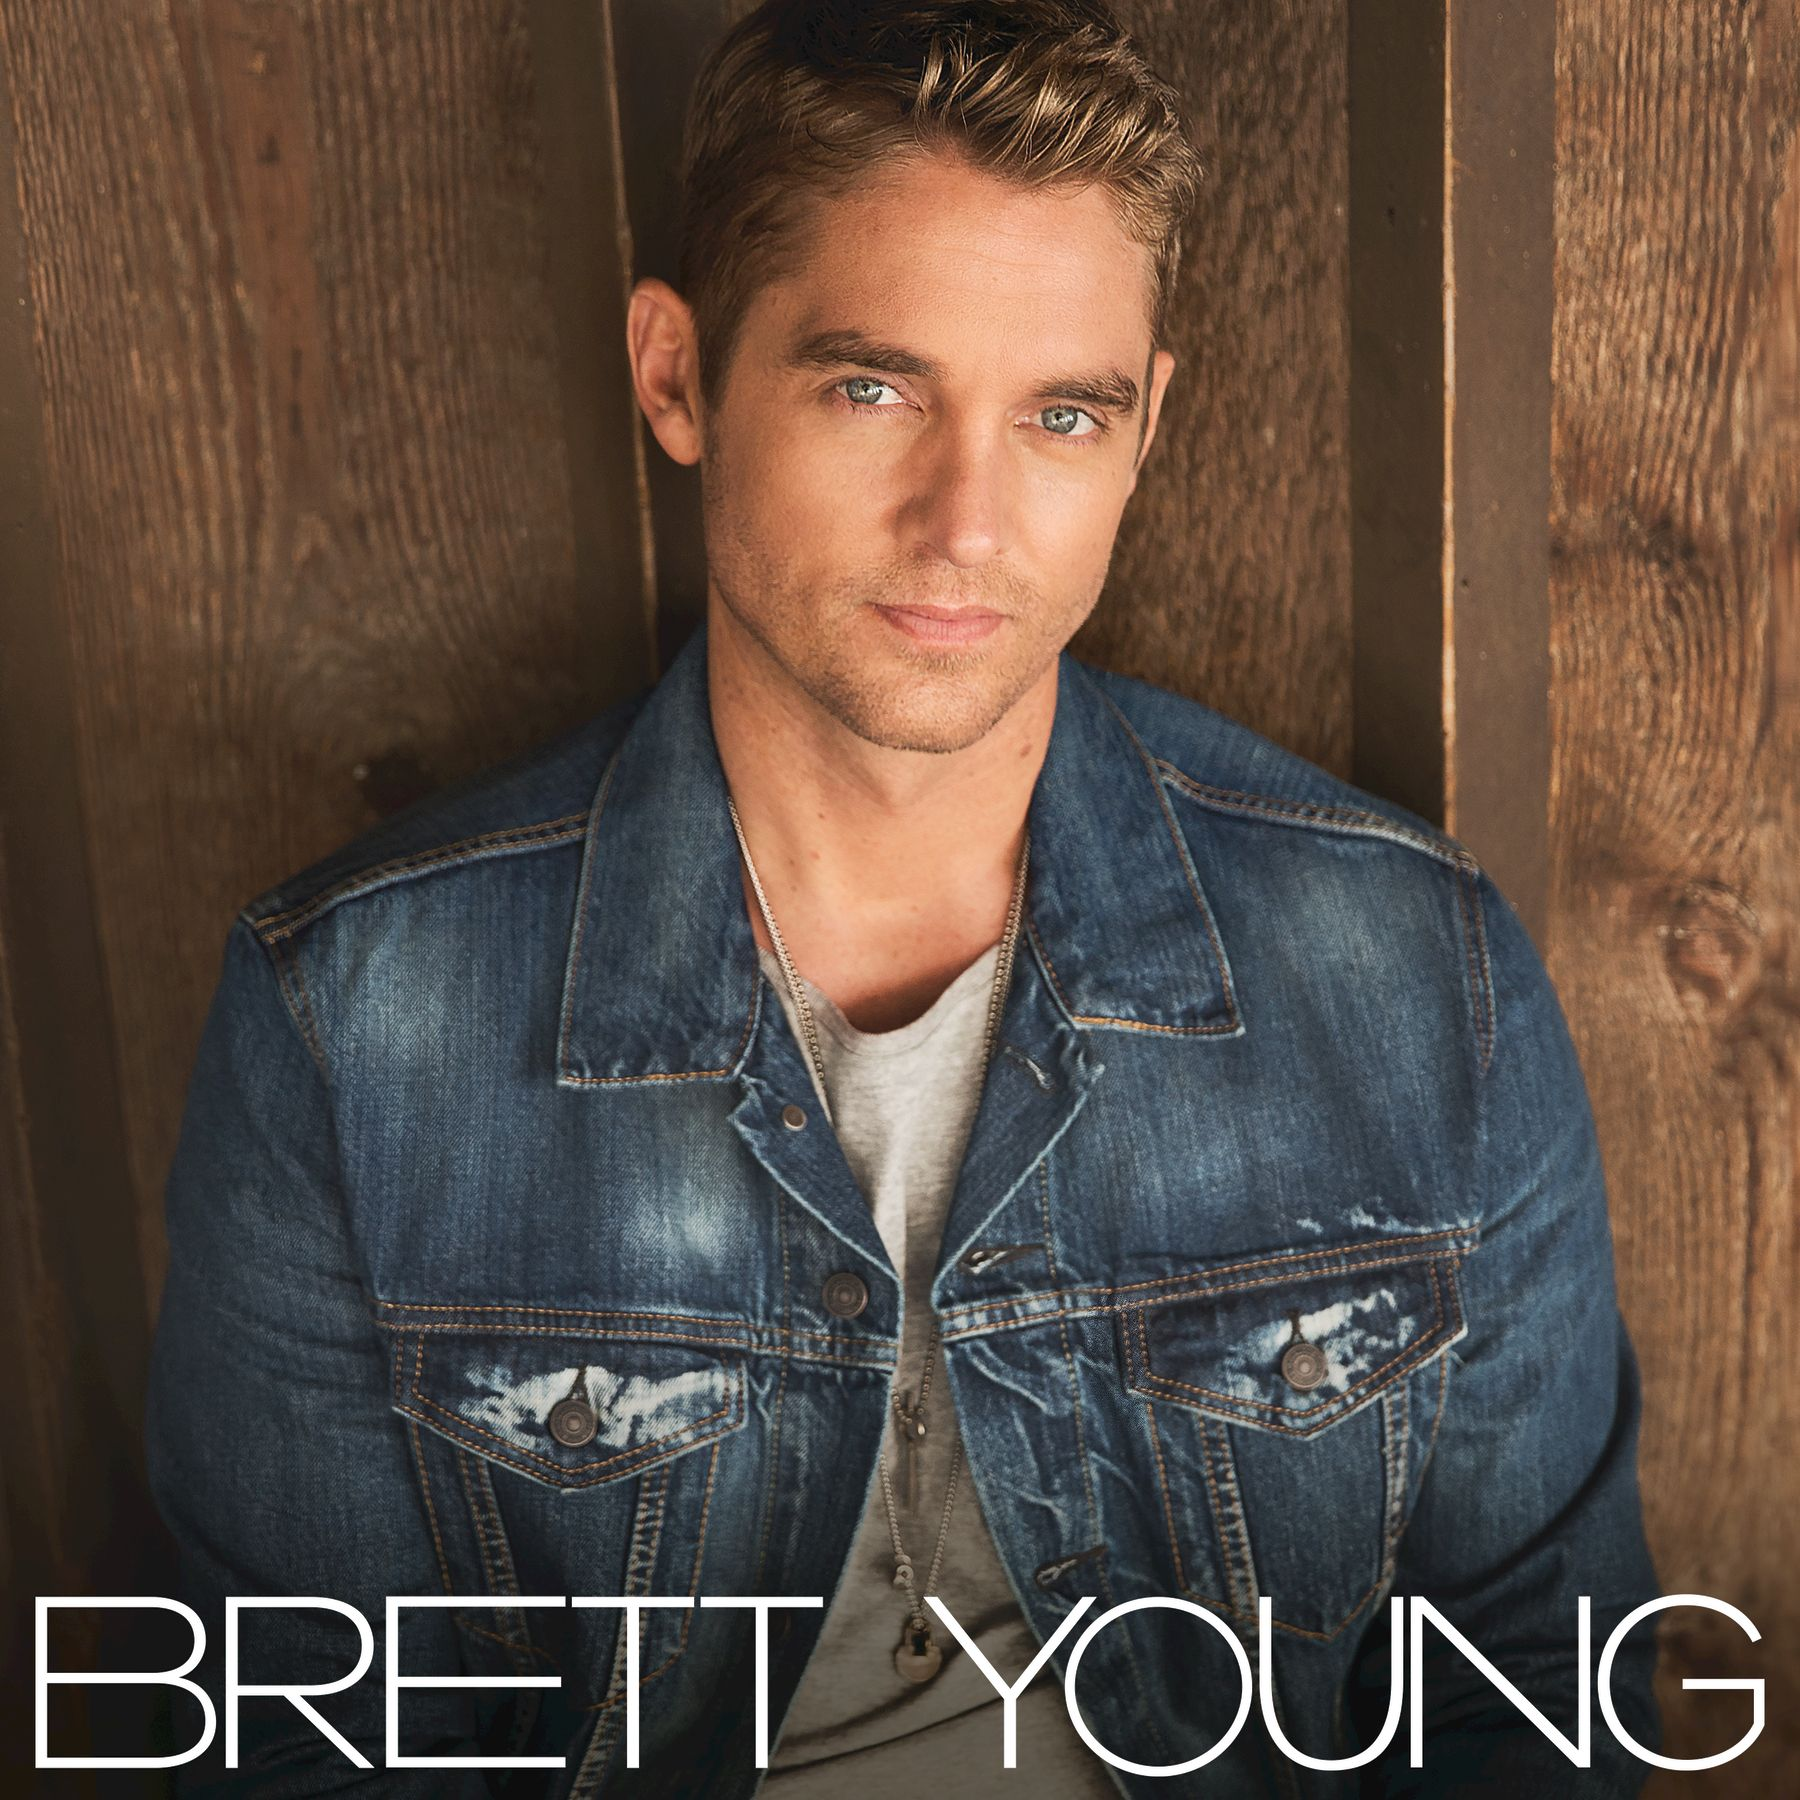 Brett Young - Brett Young album cover